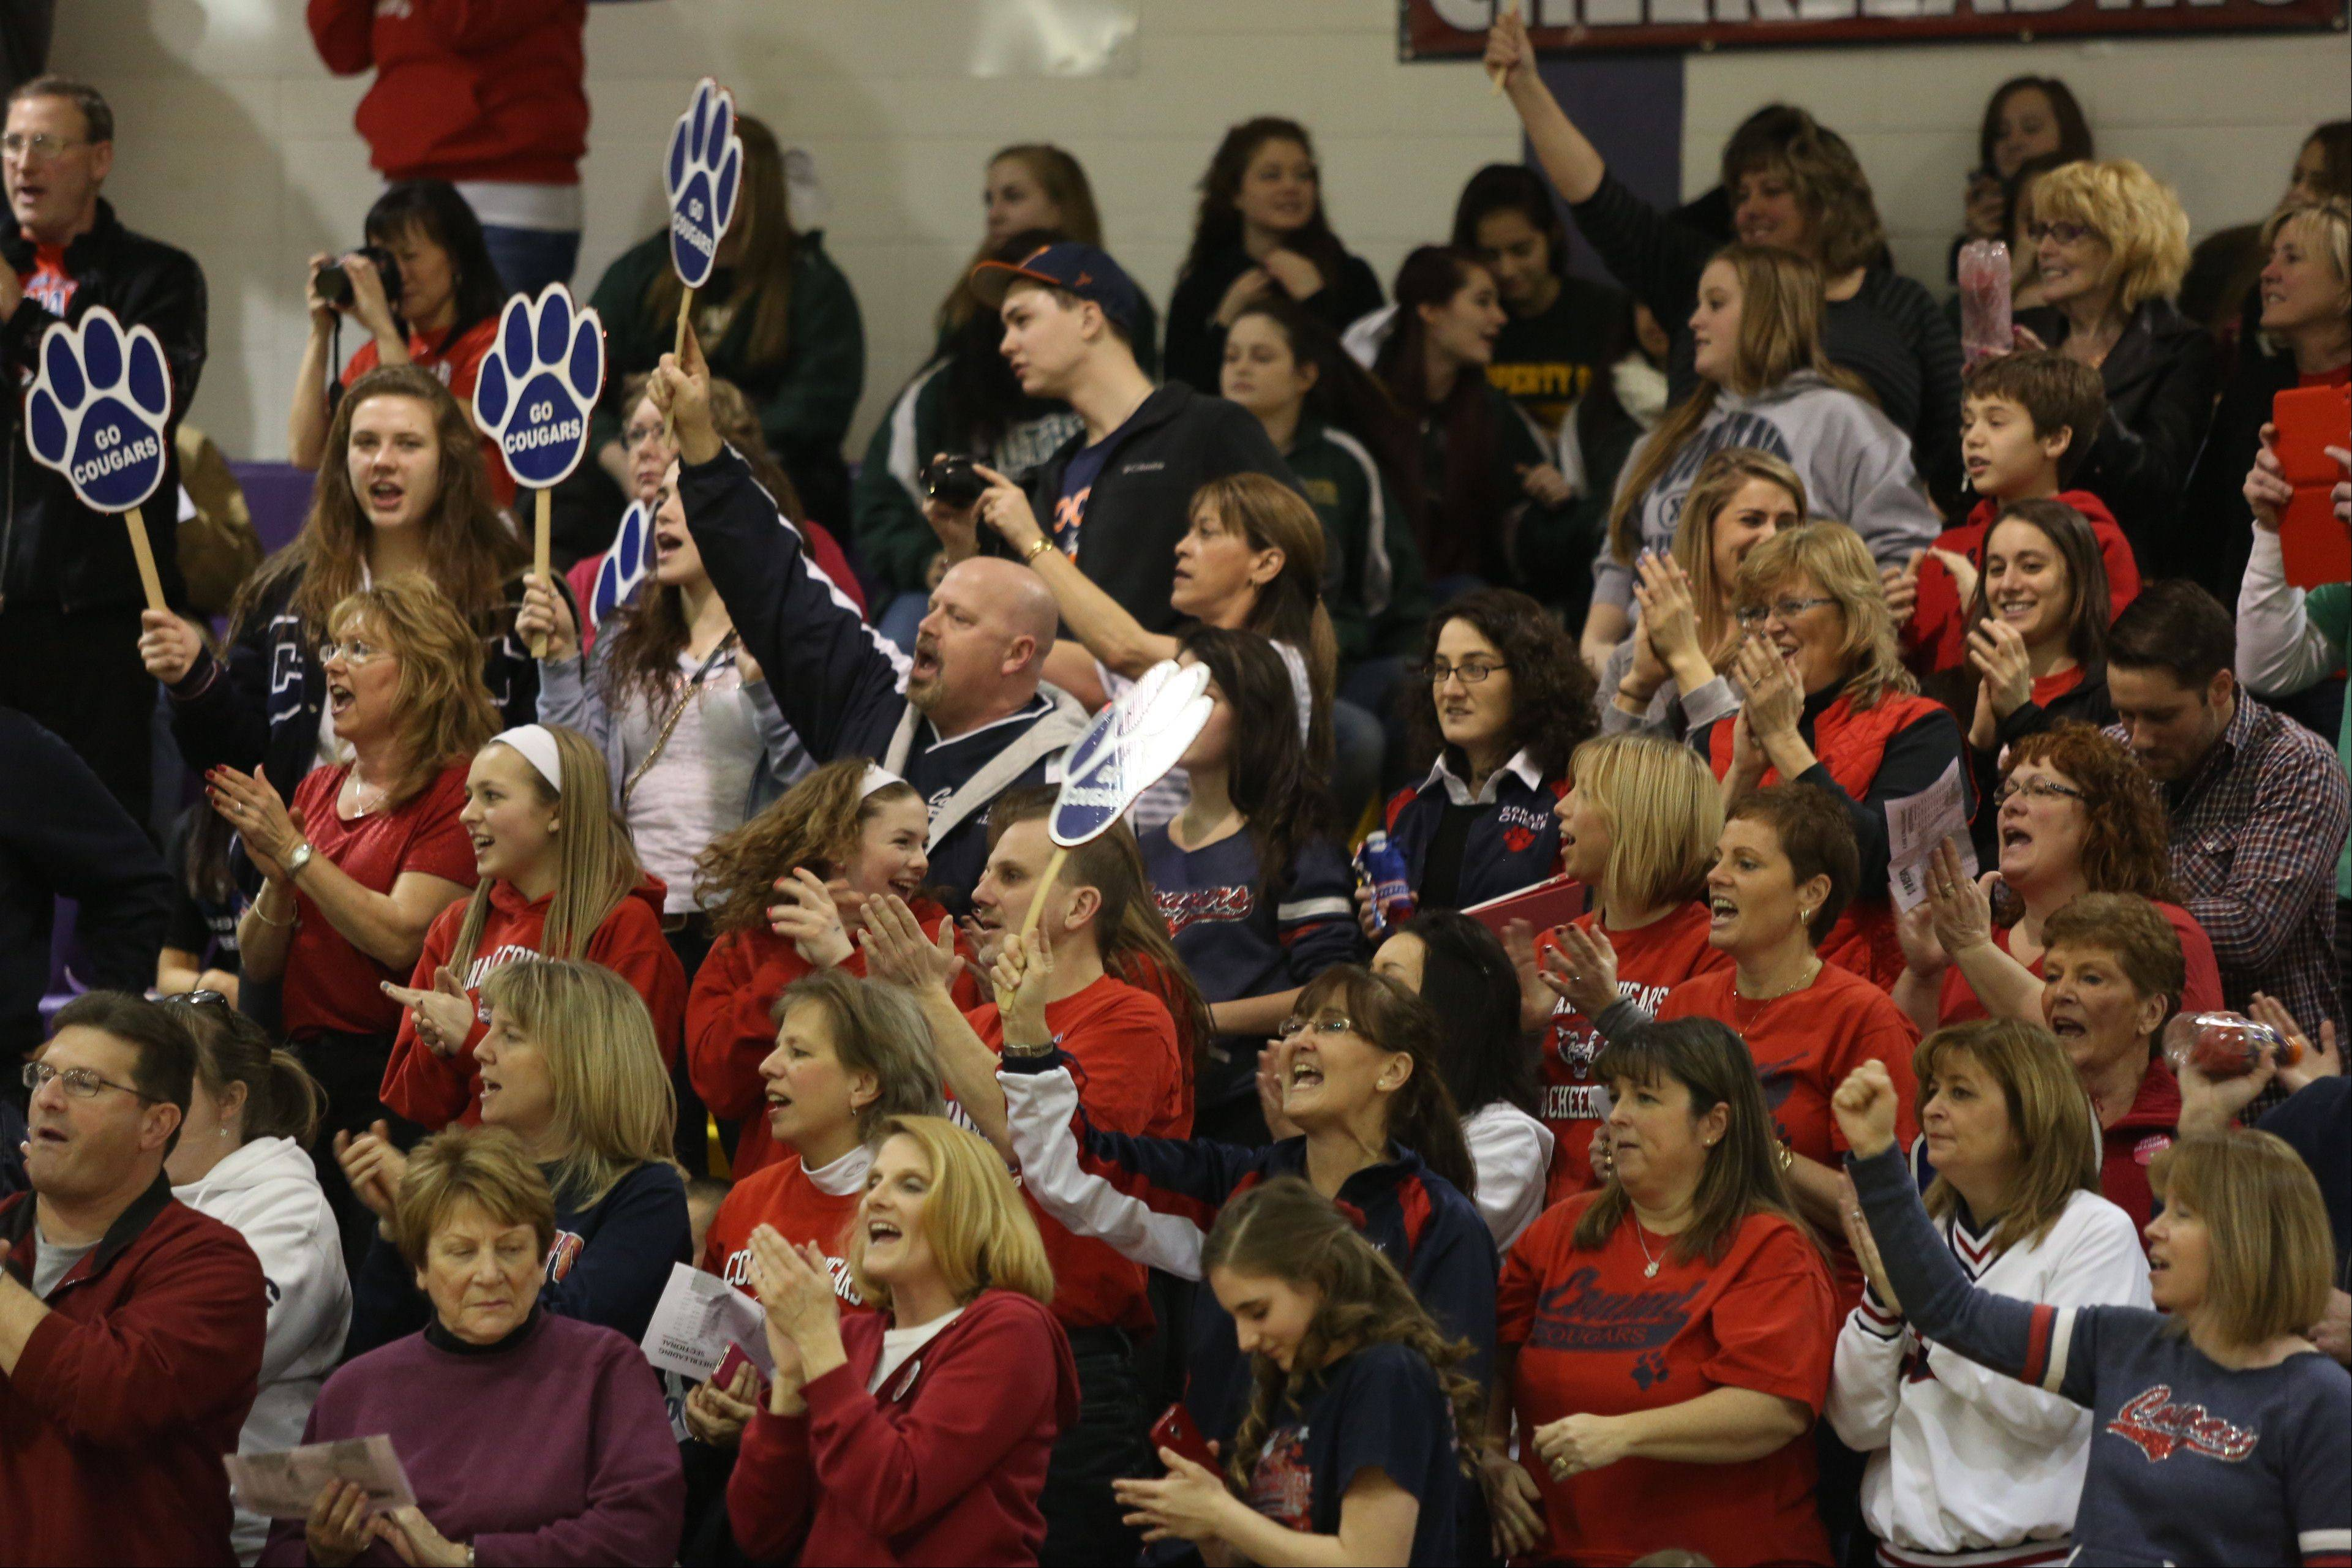 Conant High School fans cheer on the team as they compete in the Coed Team category during the IHSA Cheerleading Sectional Sunday hosted by Rolling Meadows High School.